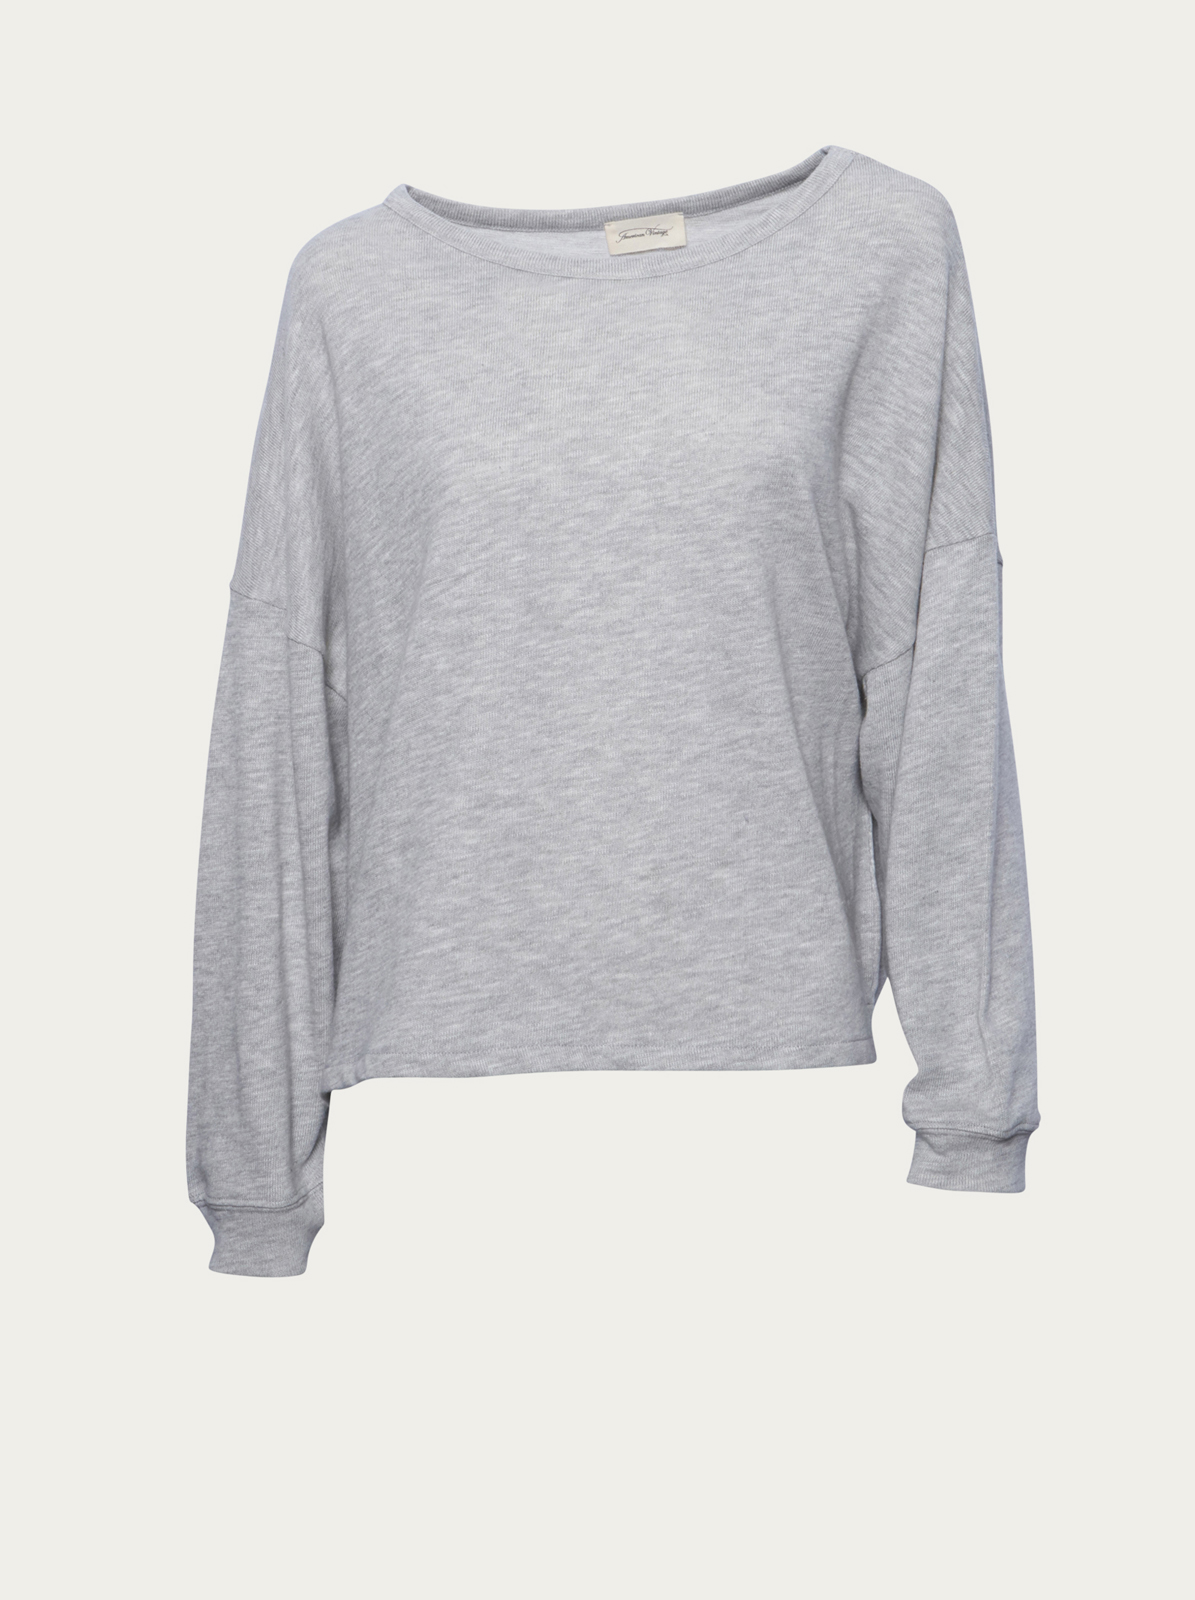 Adidas Originals Sweatshirt »oversized Sweat« Grau-meliert